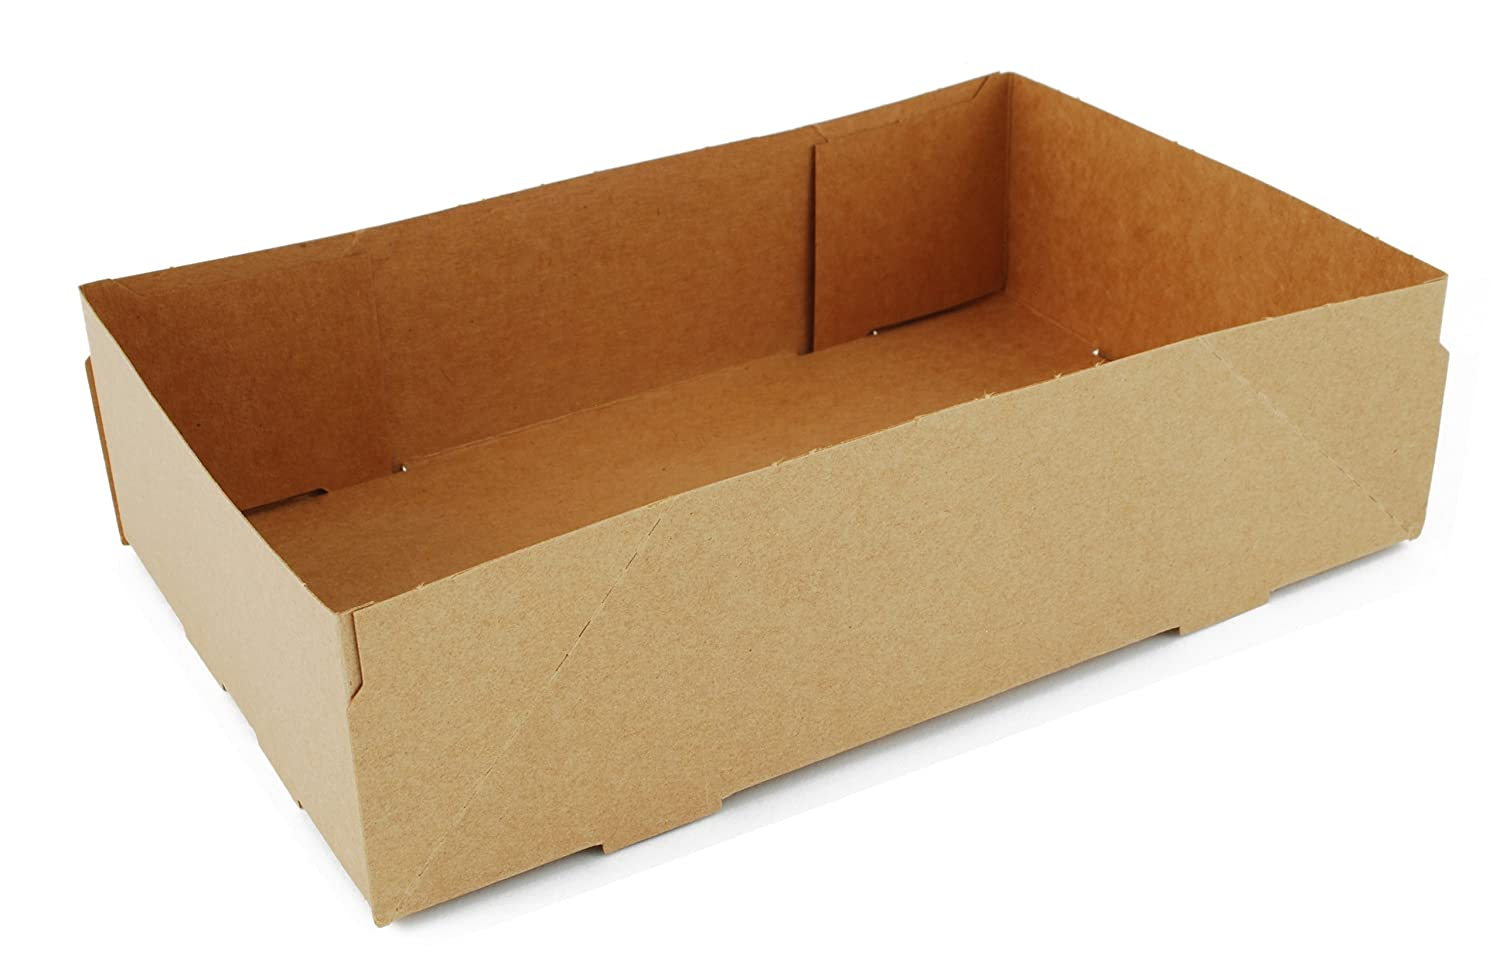 Southern Champion Tray 0122 Kraft Paperboard 4 Corner Pop Up Food Tray, 8-5/8